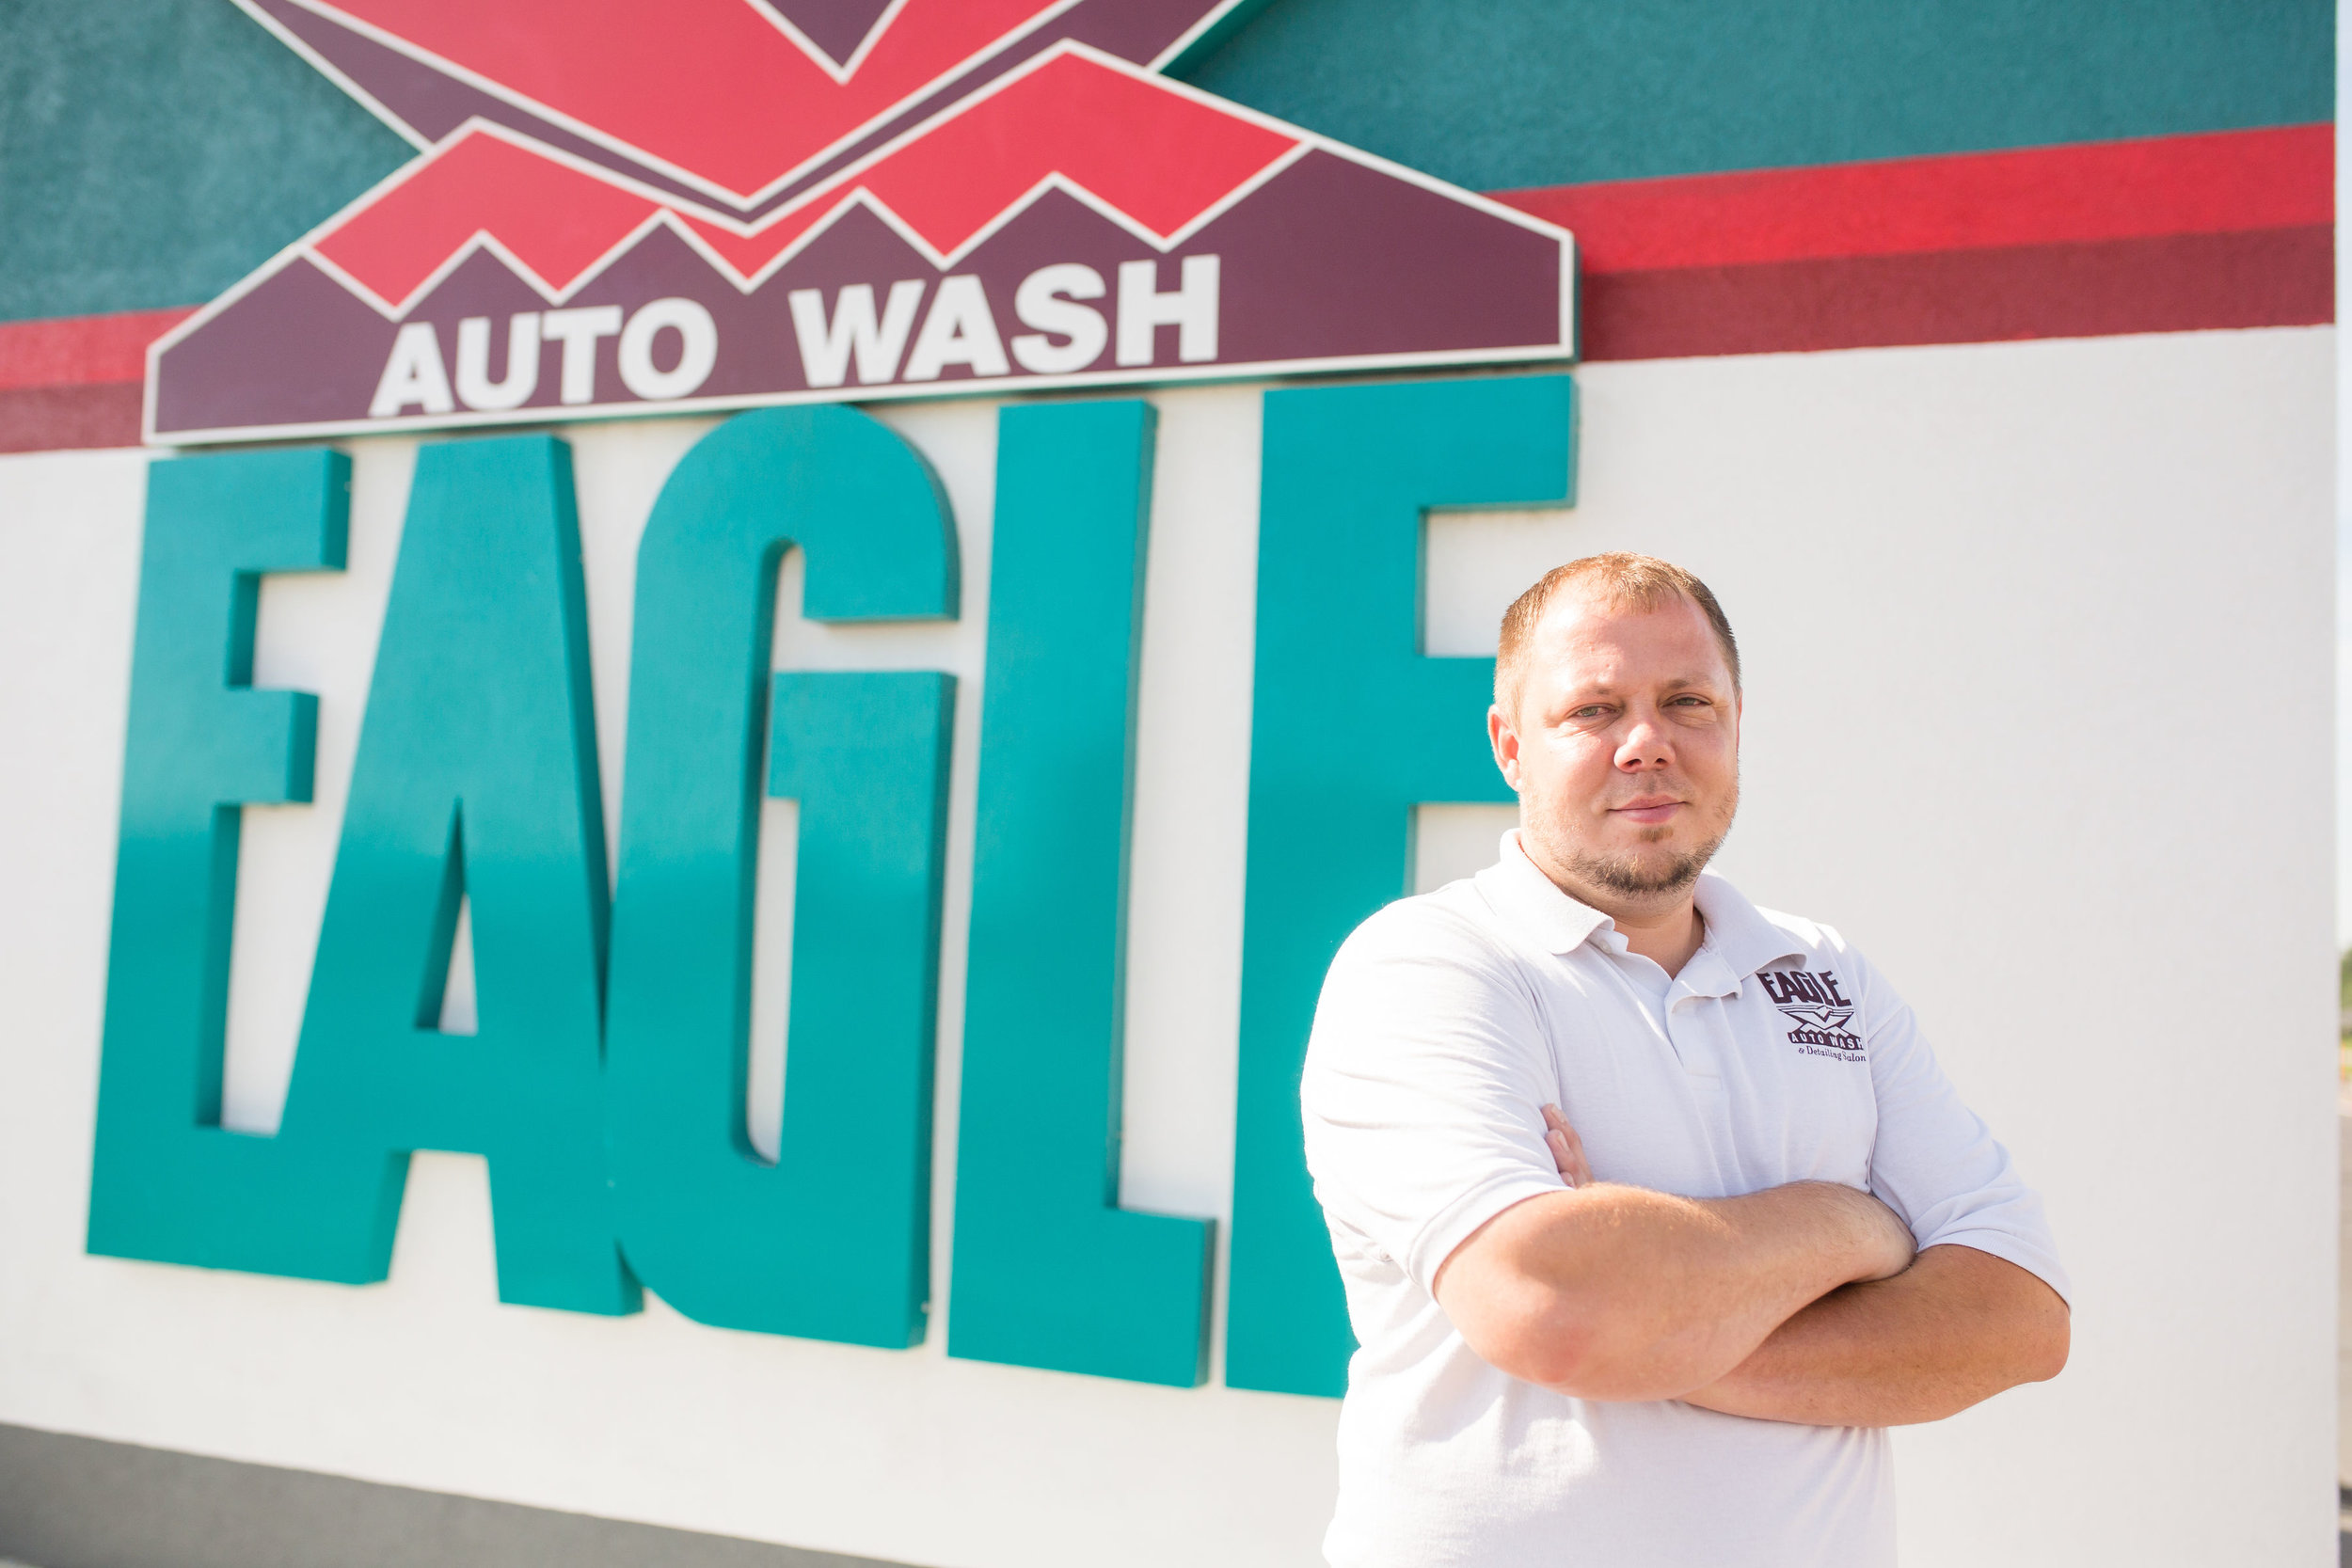 Shelby Reutzel, operations manager at Eagle Auto Wash & Detailing Salon, provides on-the-job training and subtle life lessons about positive attitudes.